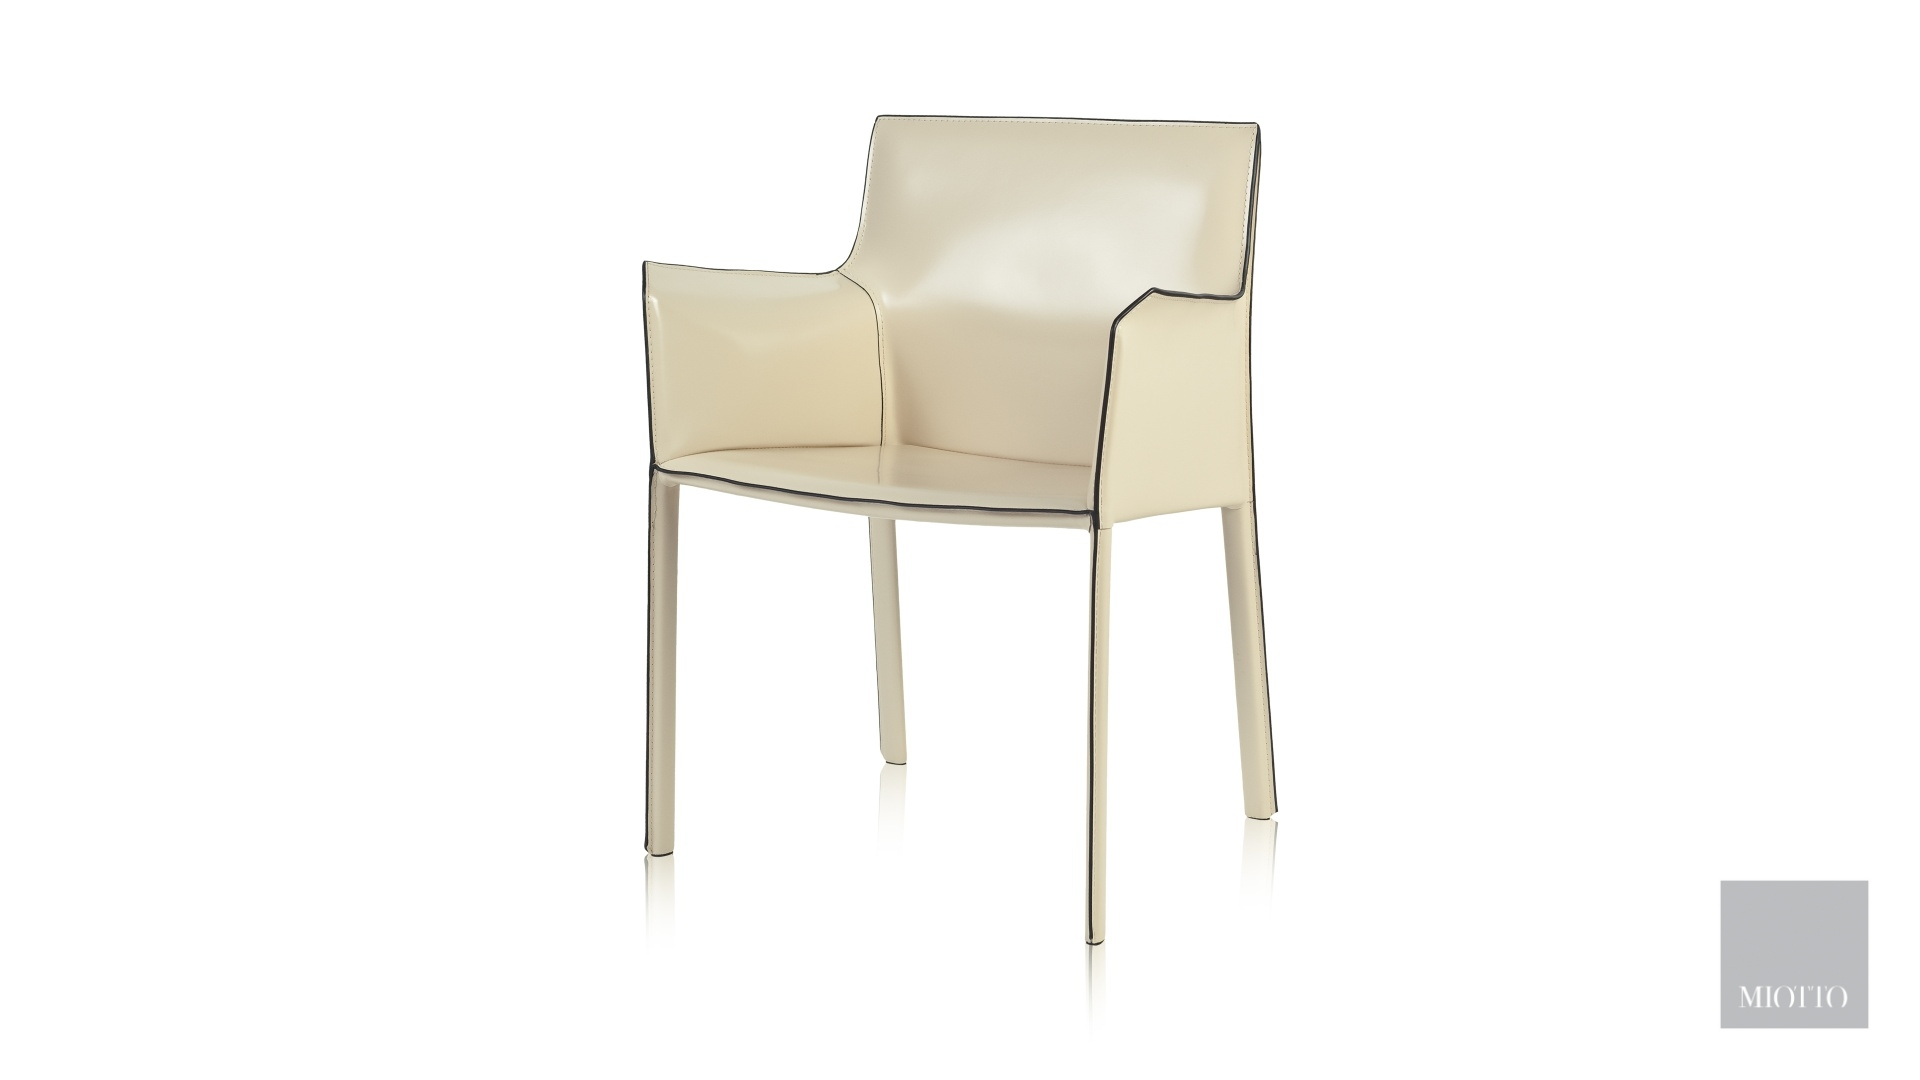 miotto_Ardini arm dining chair beige miotto furniture t